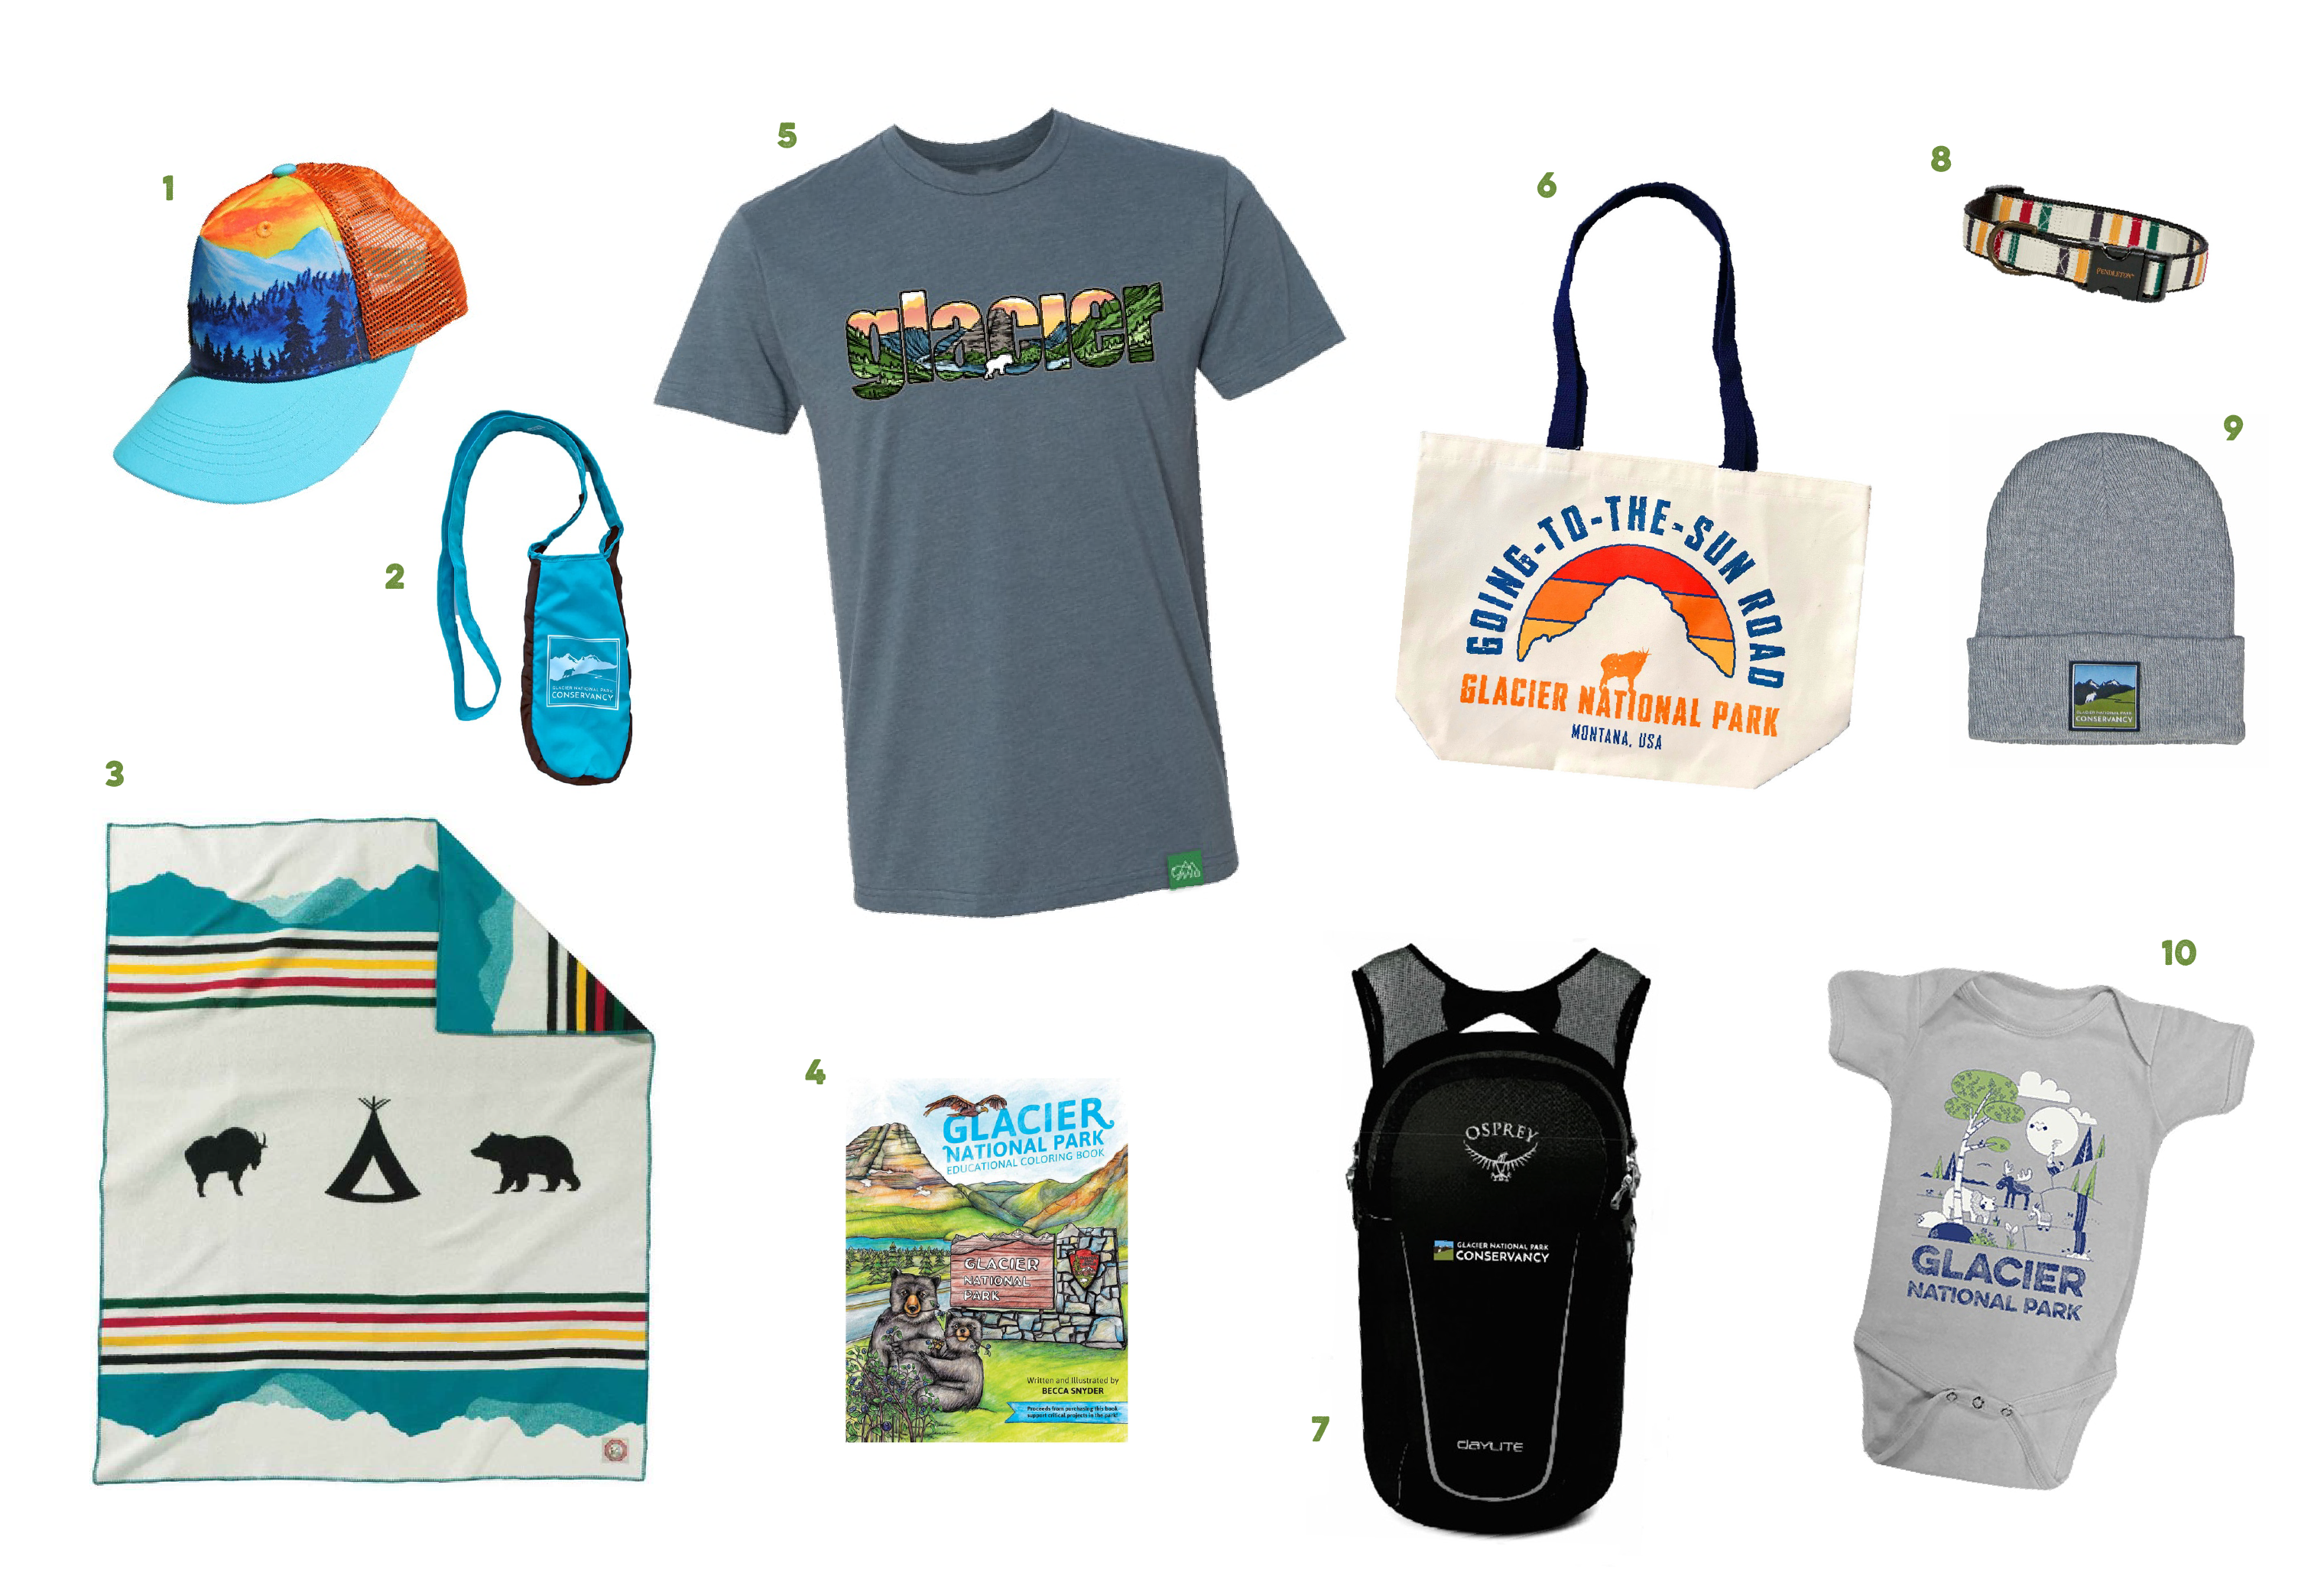 A collage showcasing a variety of Glacier National Park retail products